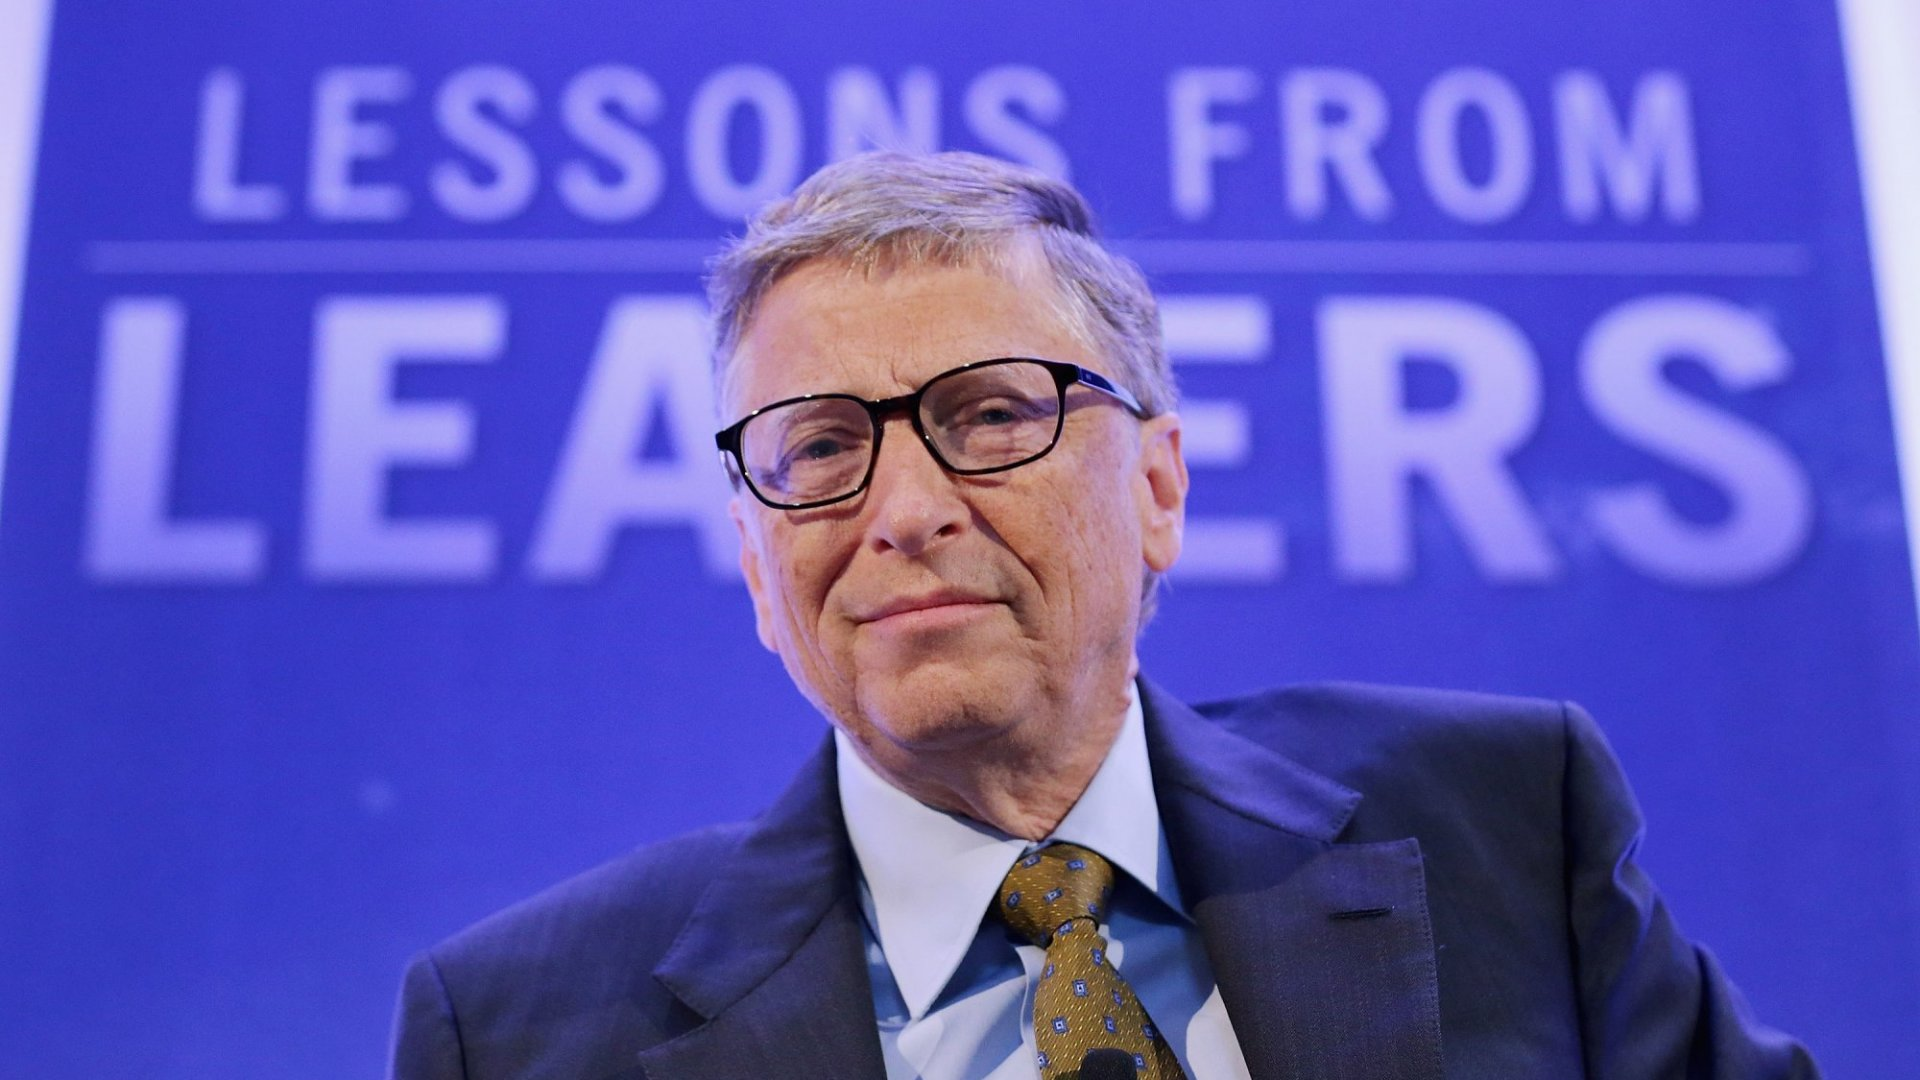 Bill Gates's Best Quotes on Success and Innovation